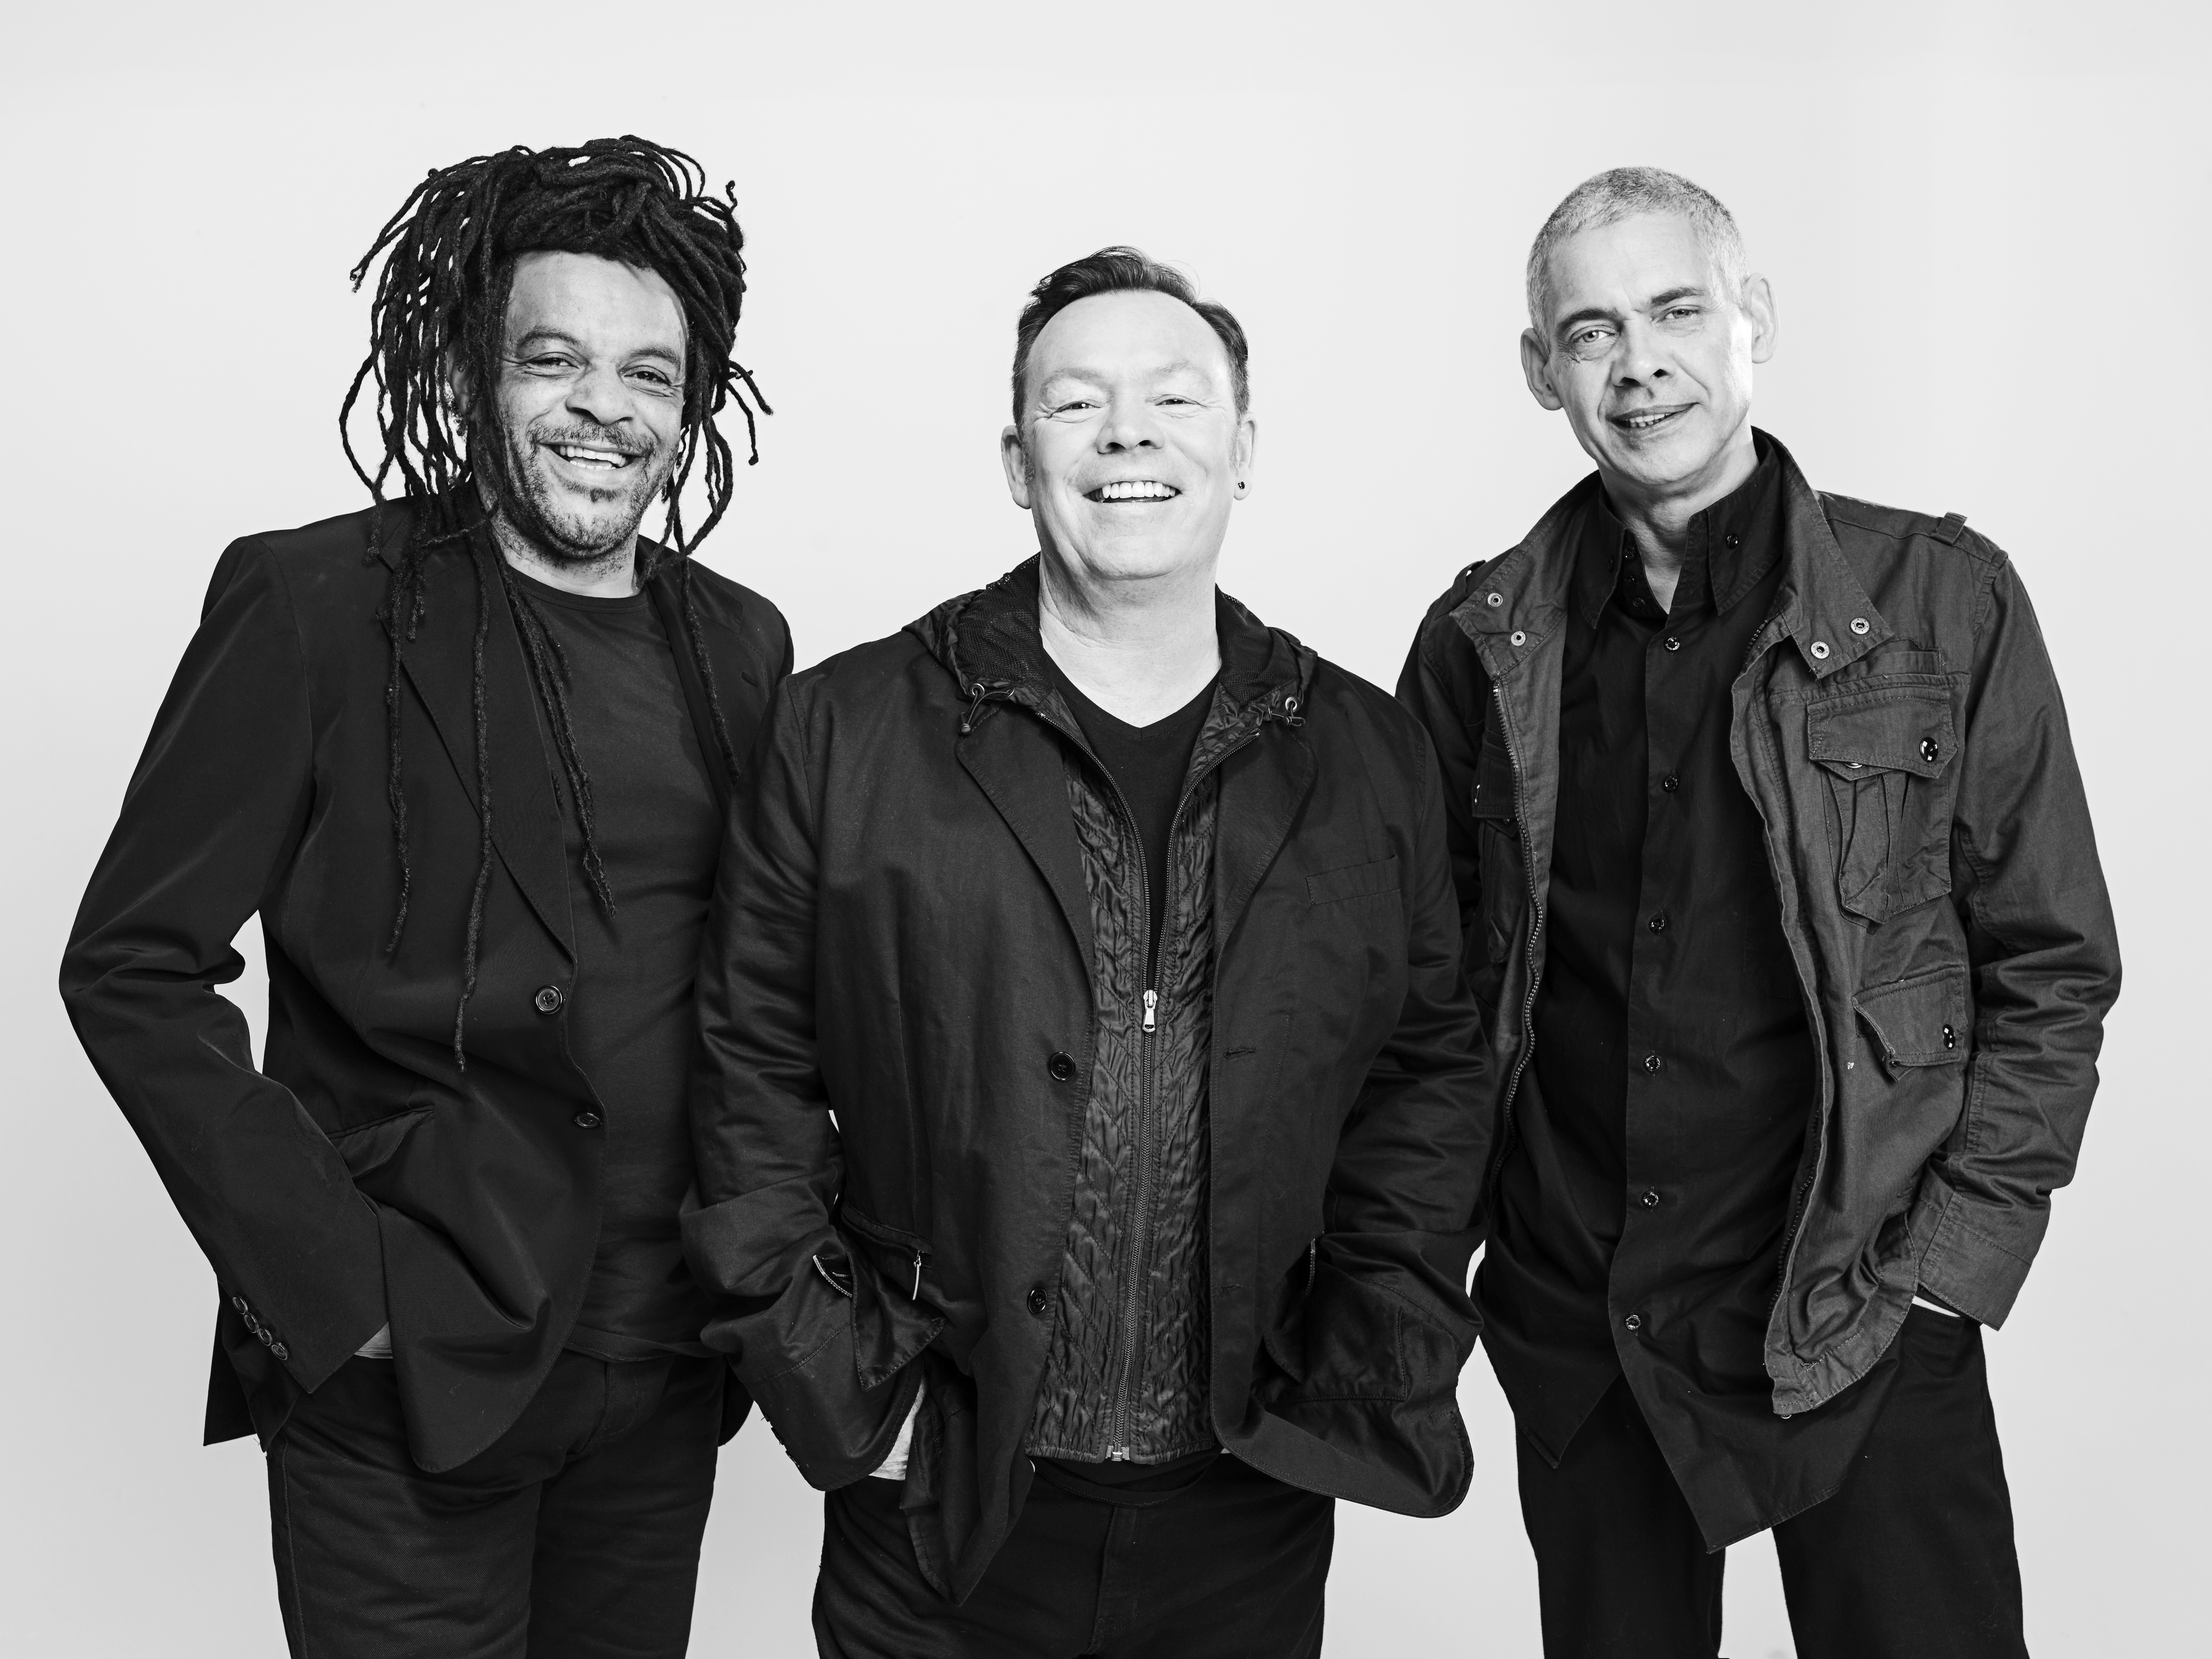 Group shot - UB40